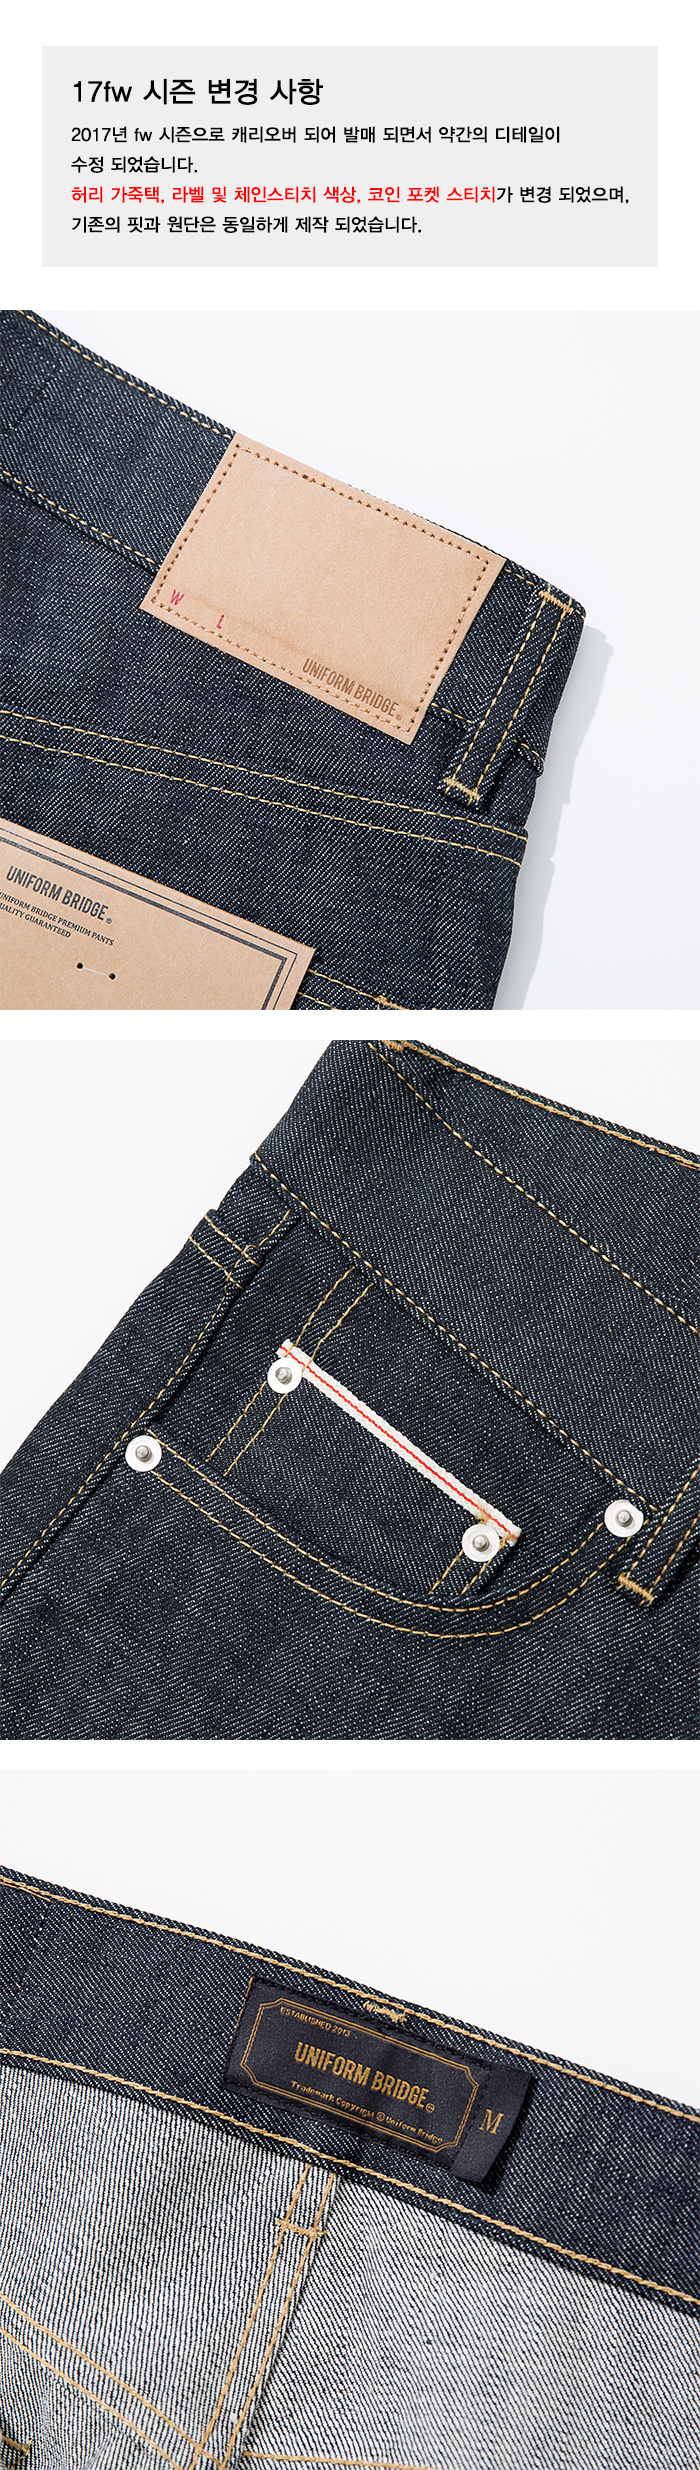 유니폼브릿지(UNIFORM BRIDGE) selvedge denim pants deep indigo